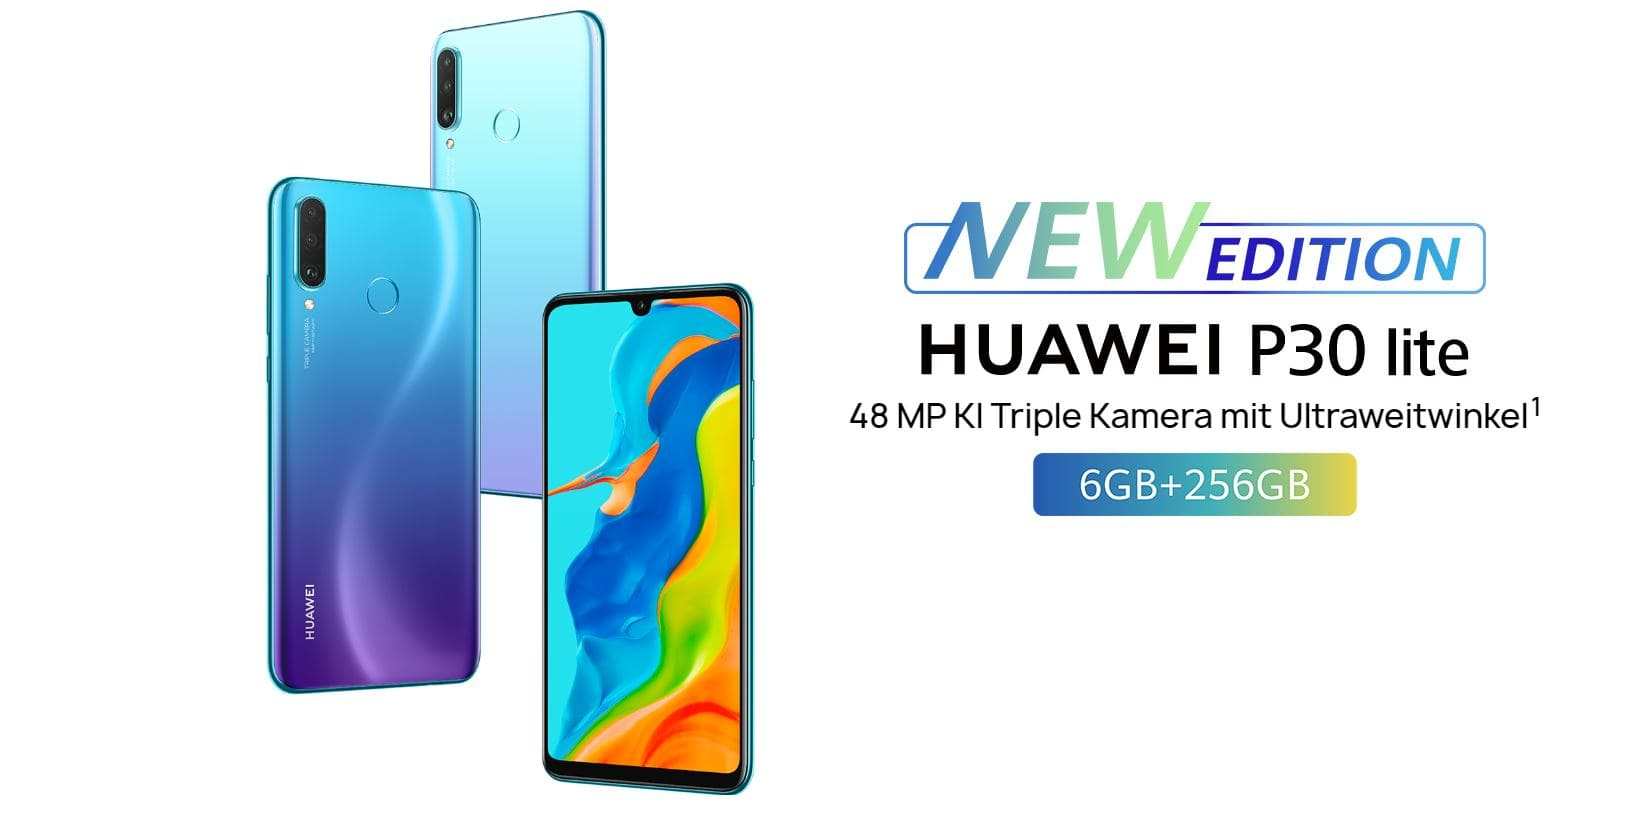 Huawe P30 Lite New Edition